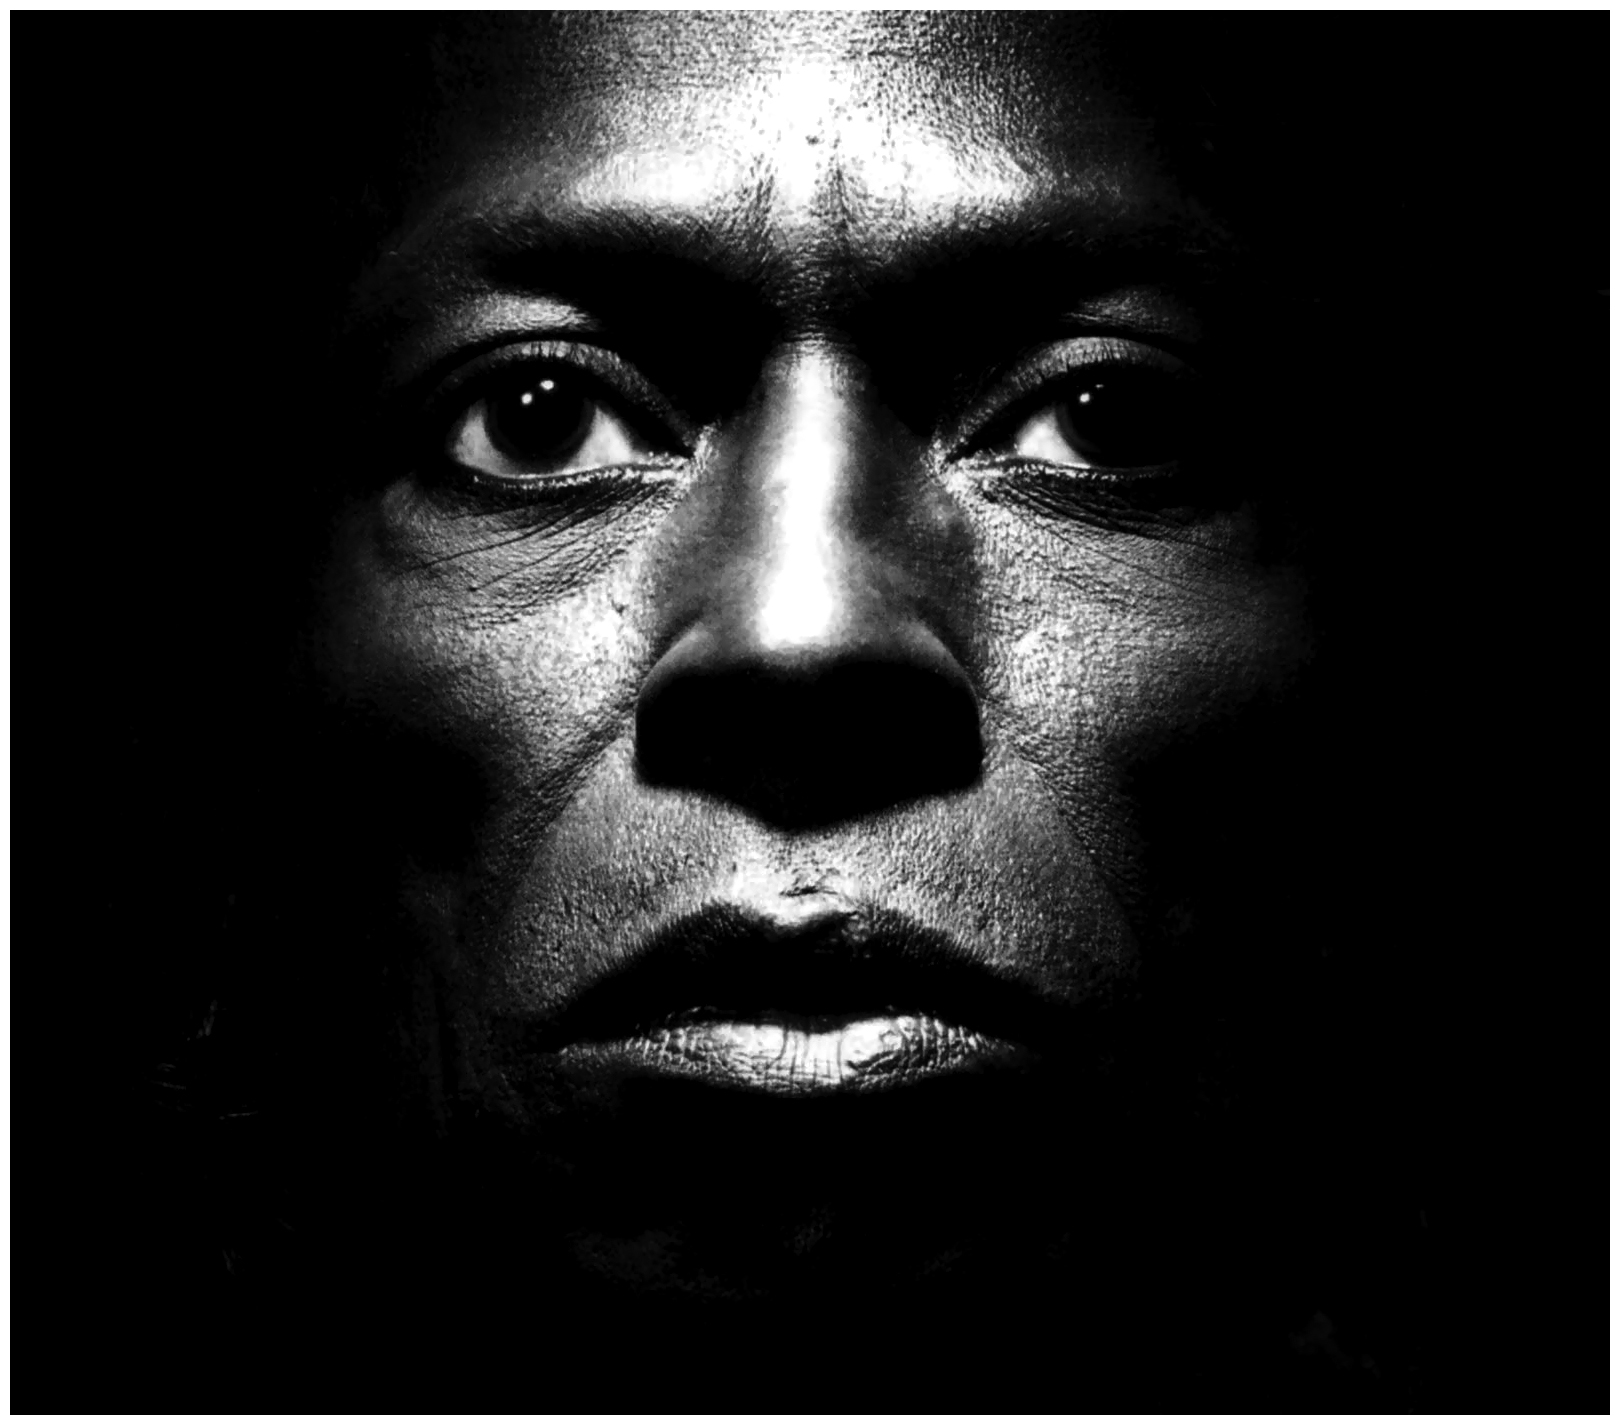 miles-davis-close-up-photo-irving-penn-1986